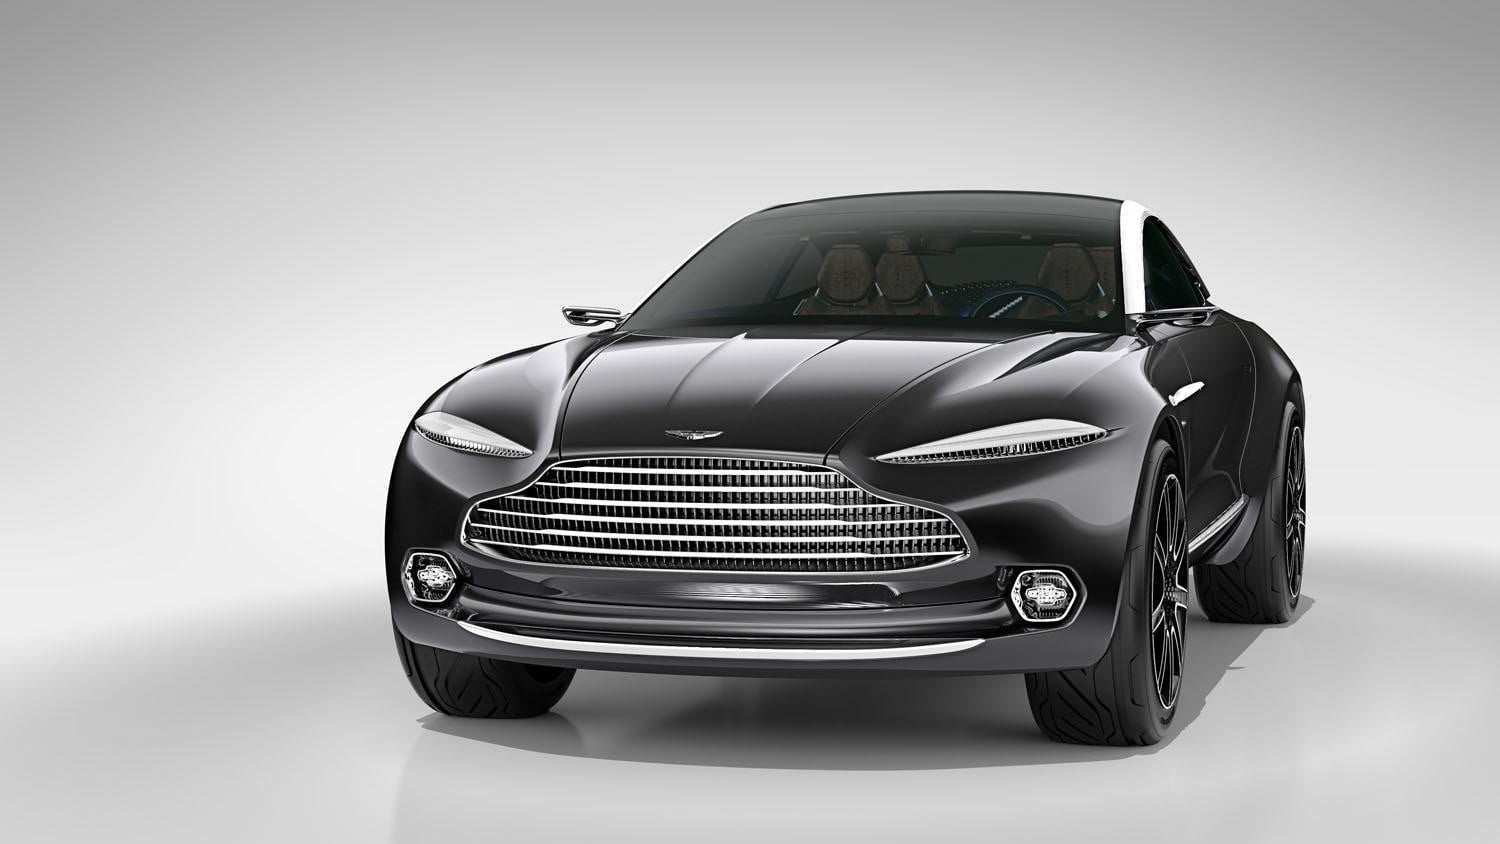 57 Great 2020 Aston Martin Dbx Style with 2020 Aston Martin Dbx